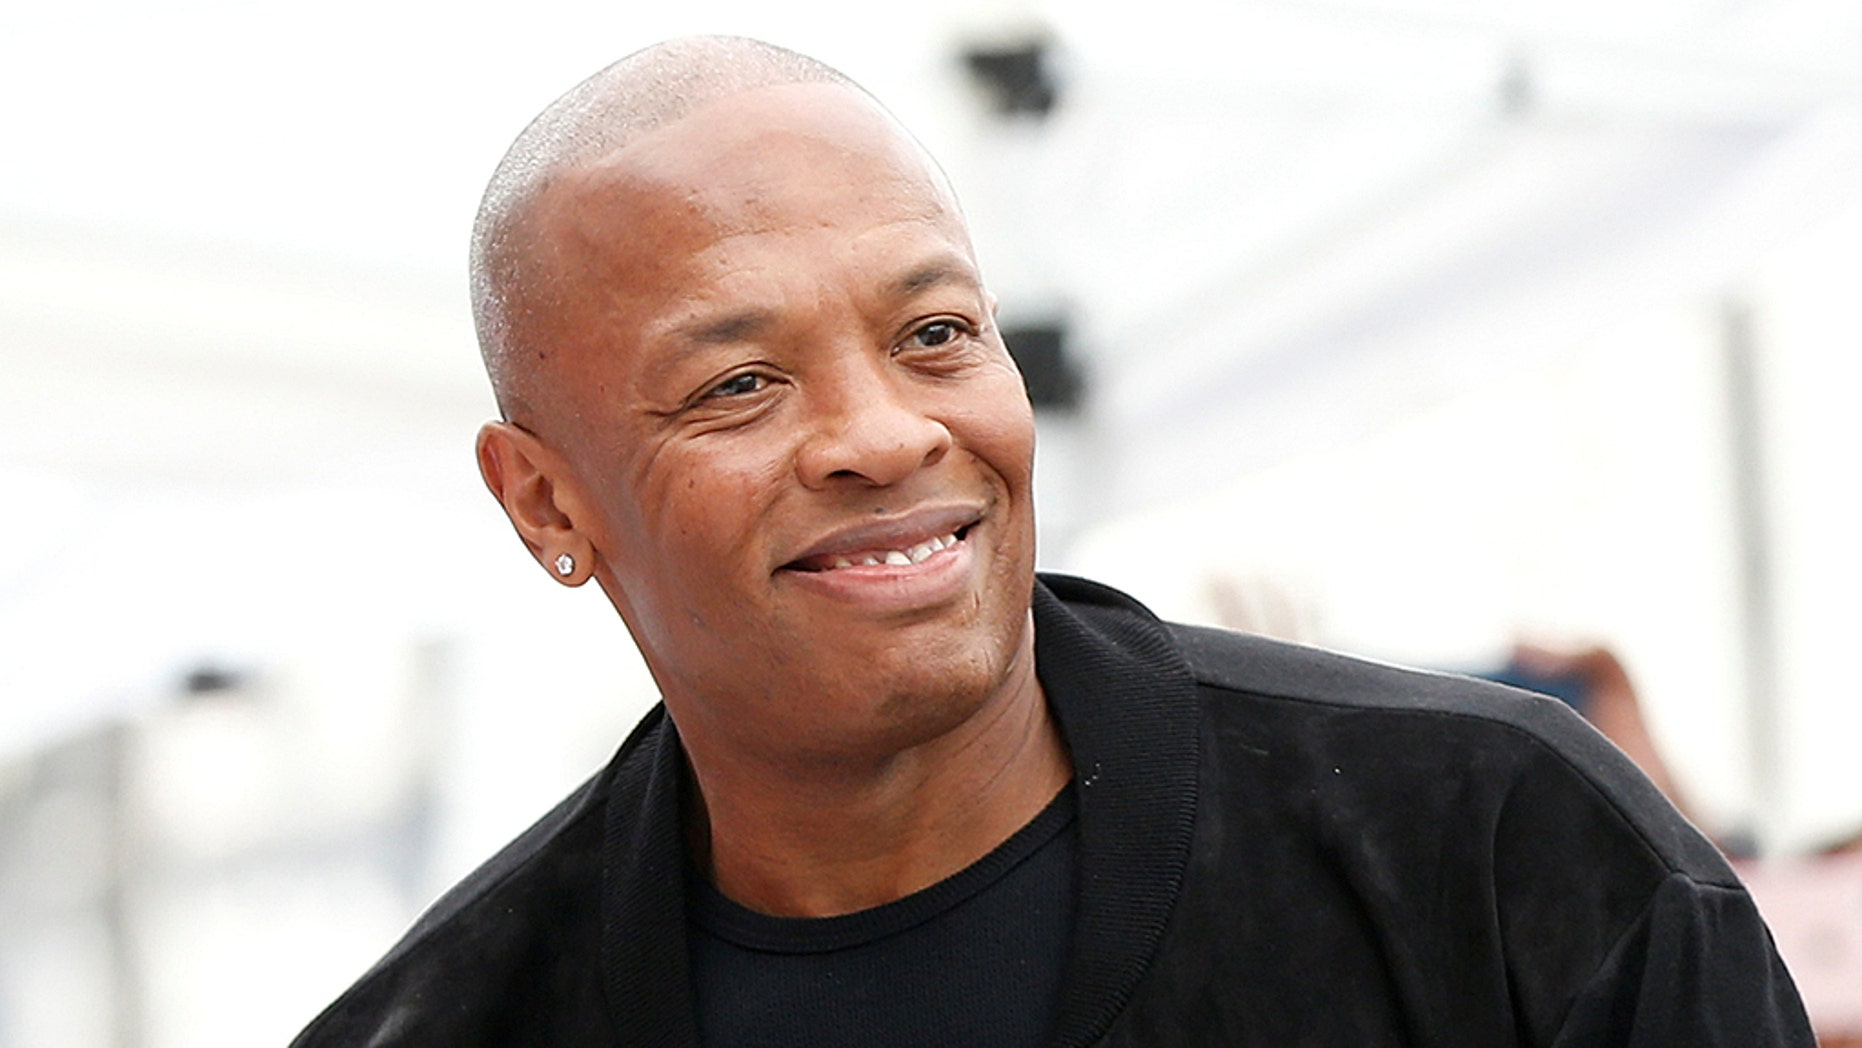 Dr. Dre made $70 million donation to the University of Southern California in 2013. Now his daughter has been accepted an enrollee. (Reuters)